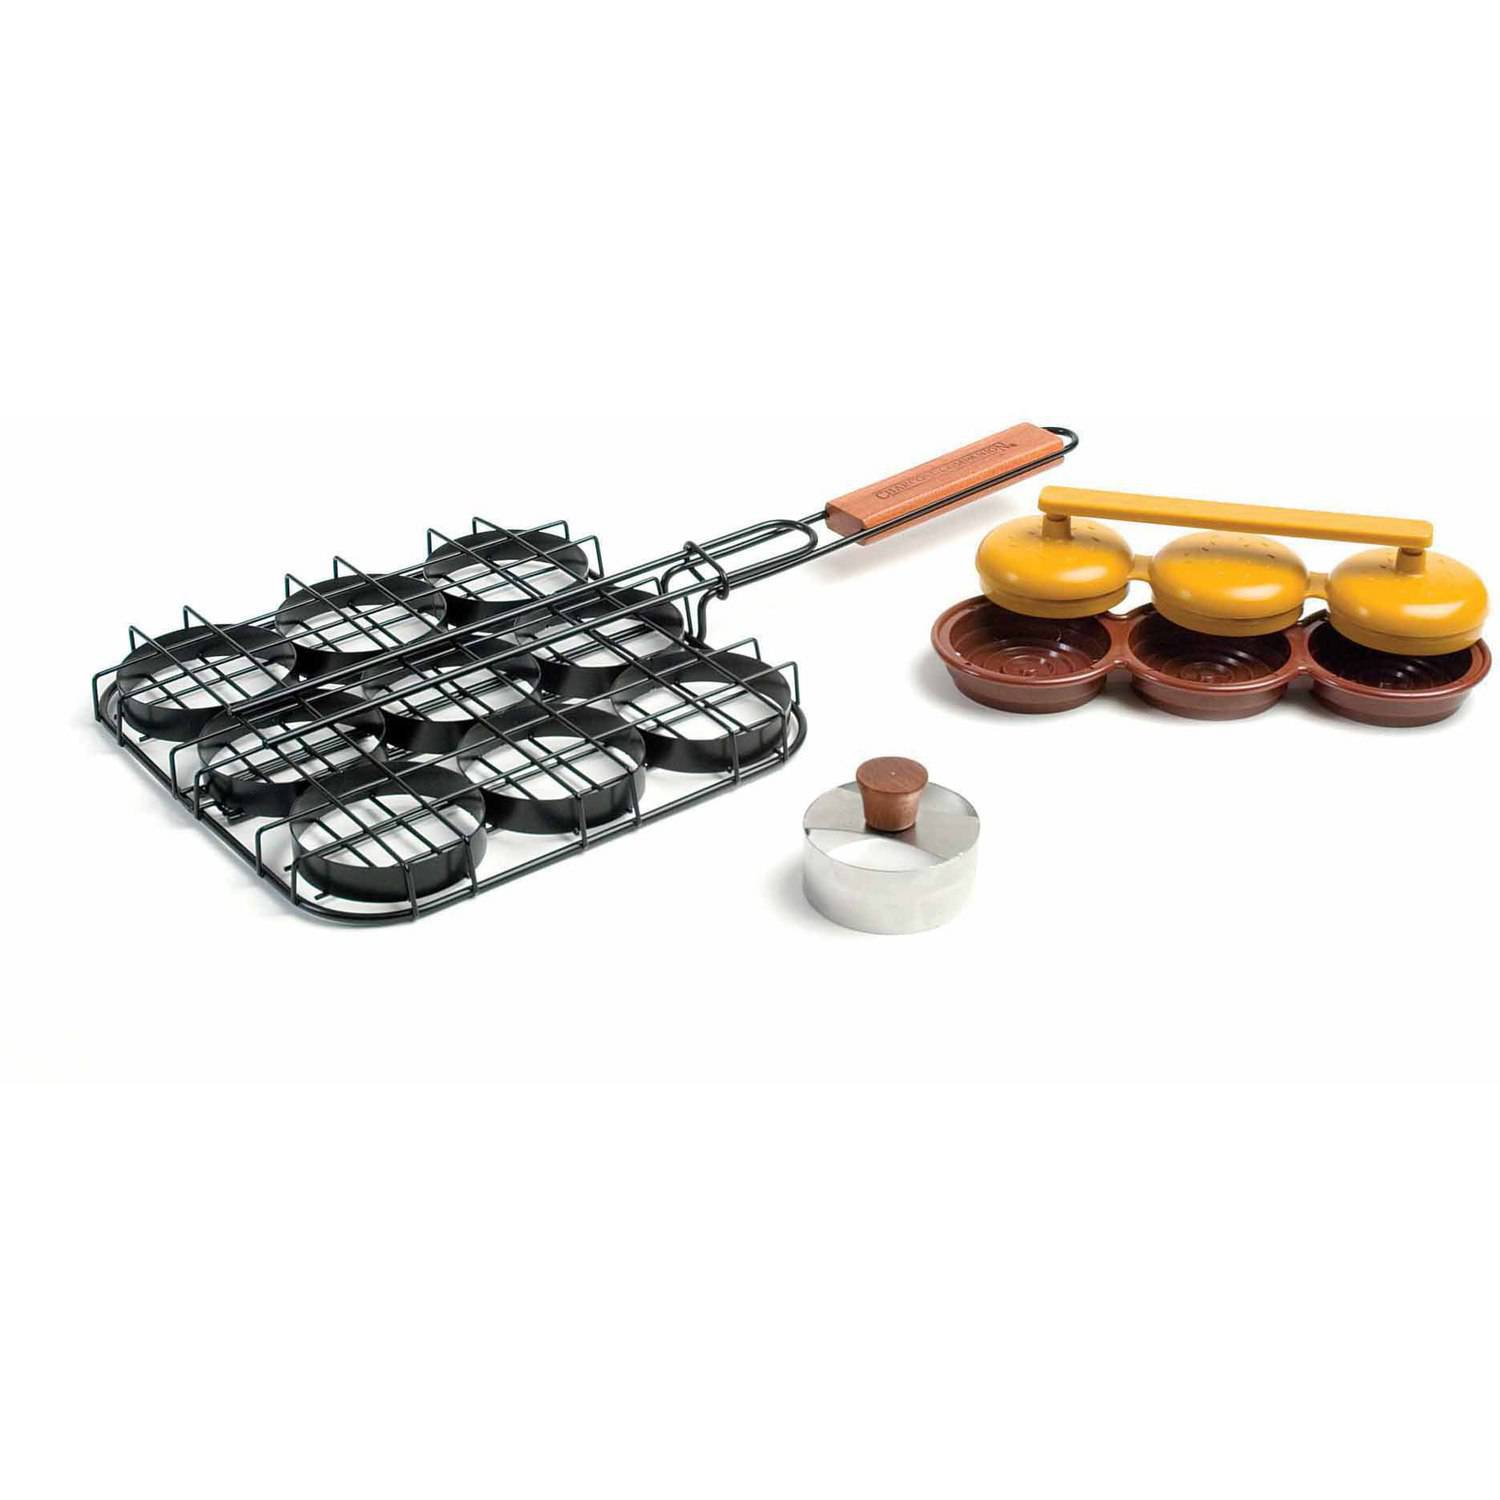 Charcoal Companion Deluxe Mini-Burger Sliders Grill and BBQ Set, CC3072